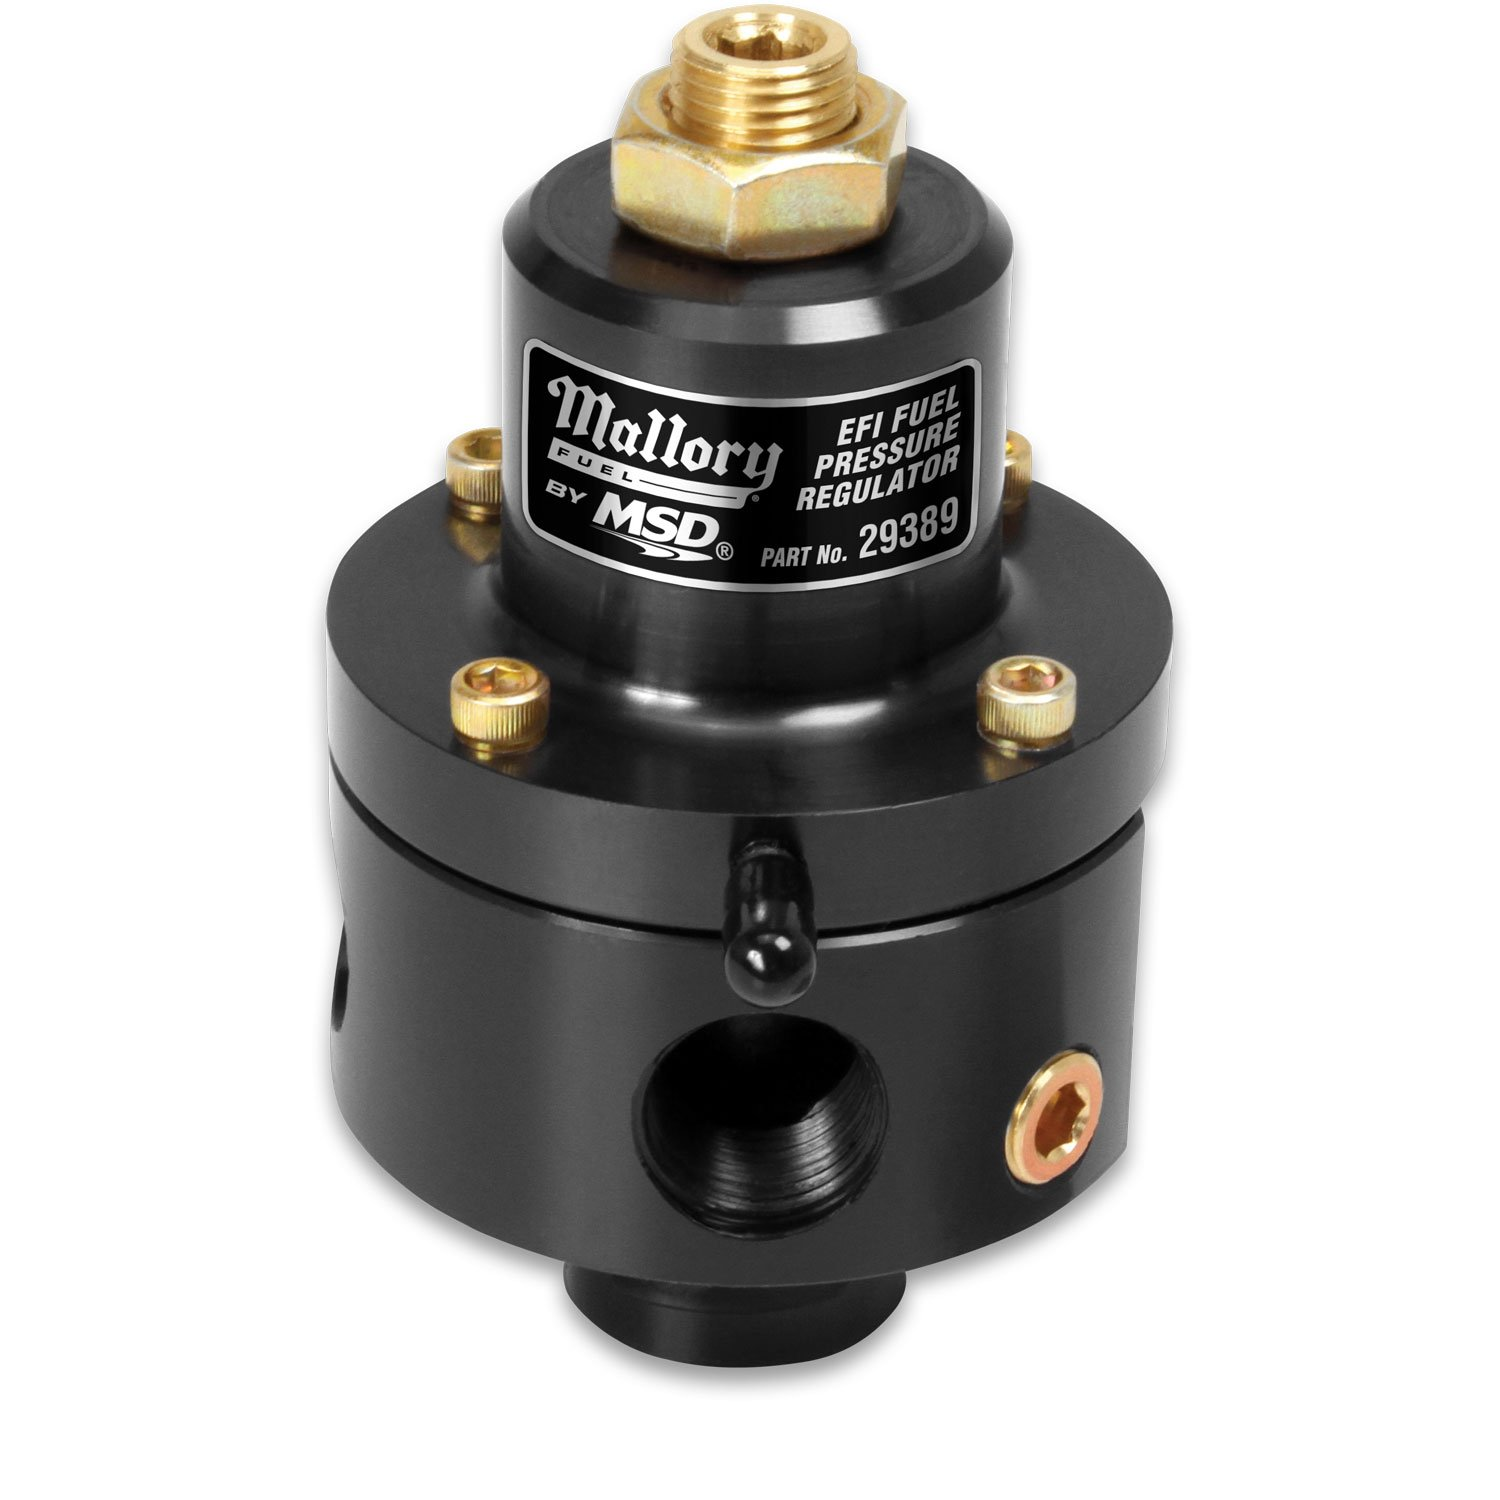 Mallory Adjustable Fuel Pressure Regulator for EFI